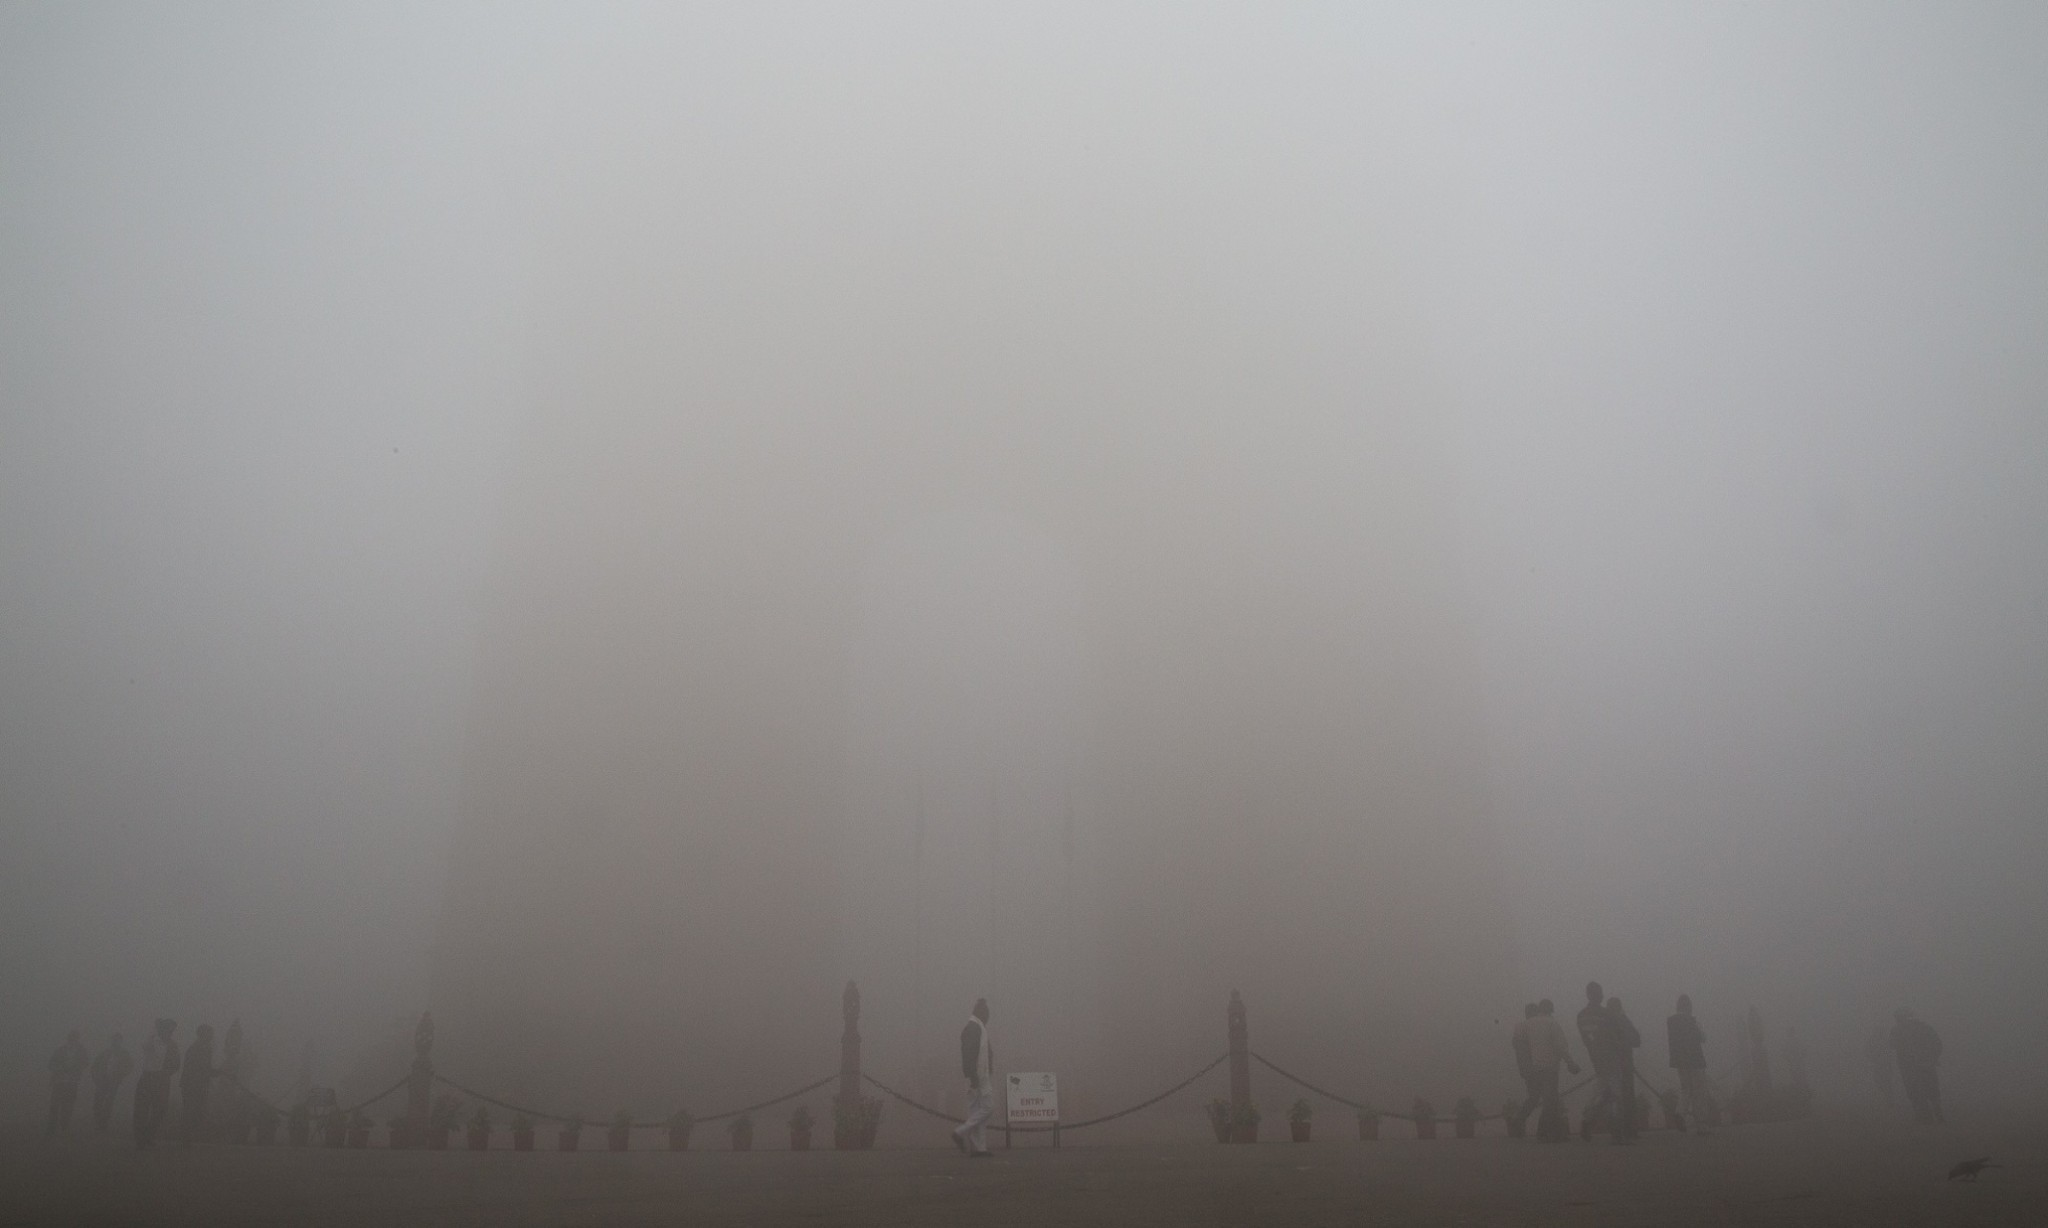 India air pollution 'cutting crop yields by almost half'